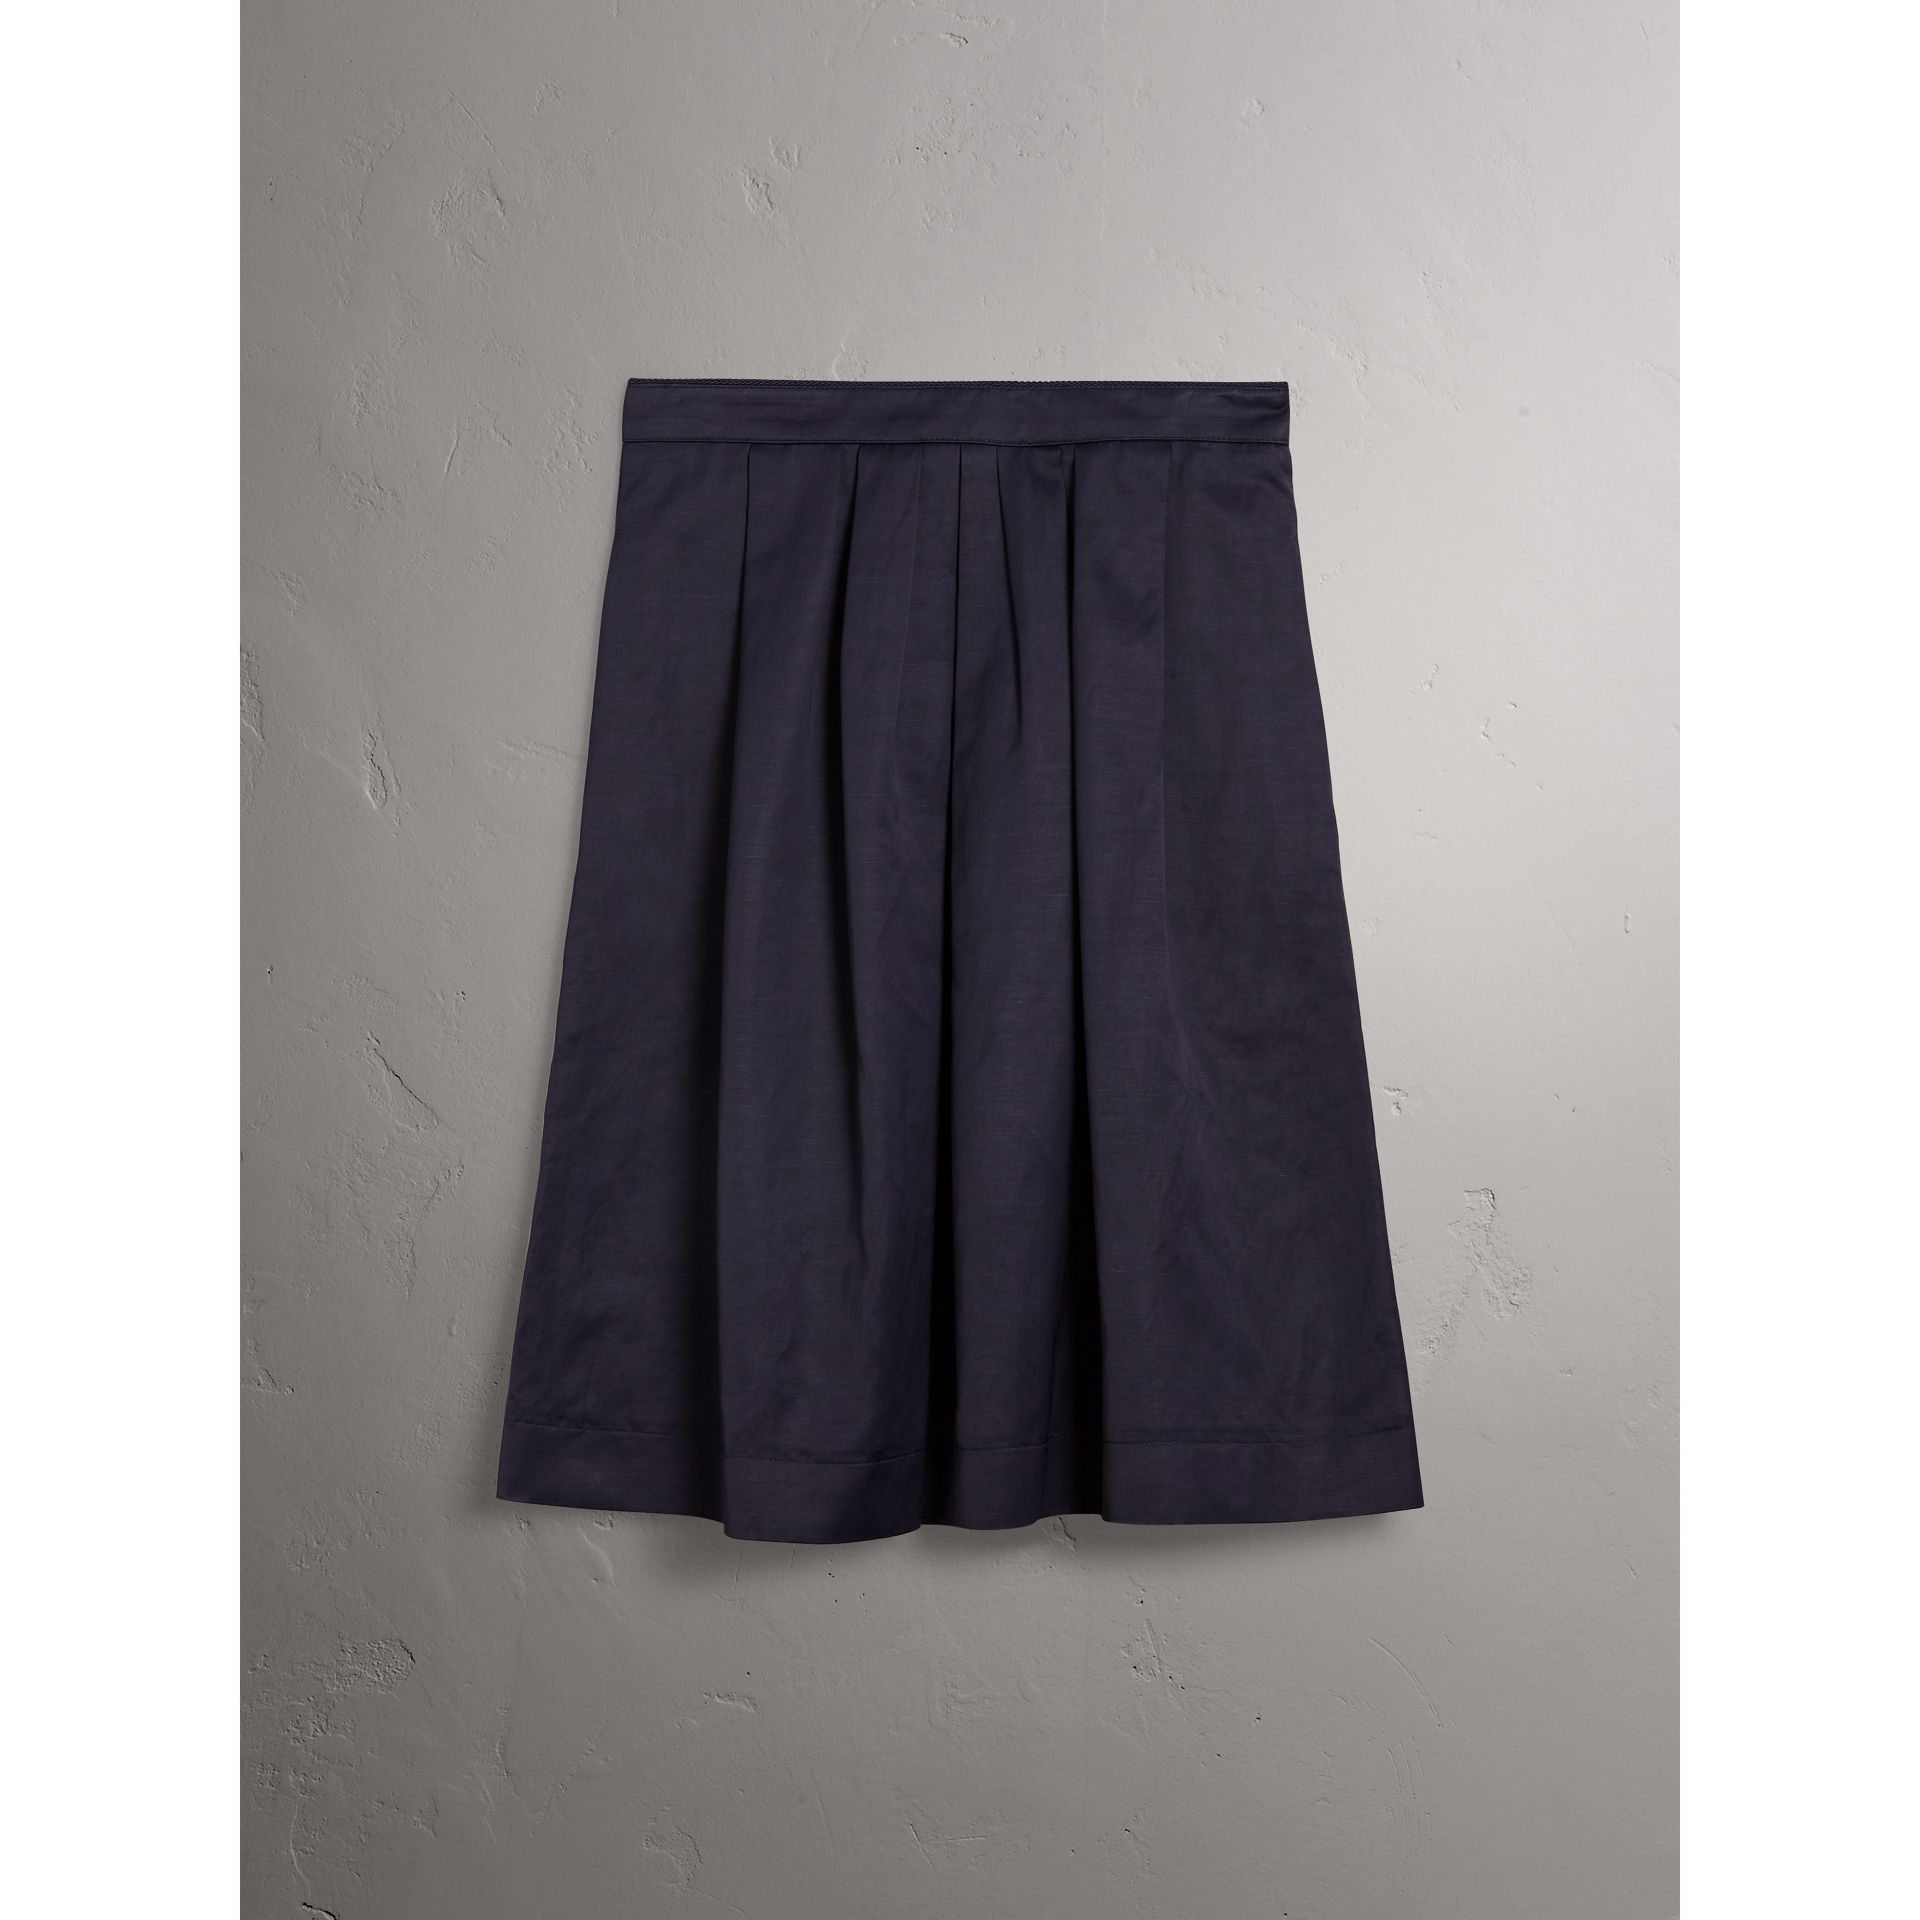 Pleated Linen Cotton Blend Skirt in Navy - Women | Burberry - gallery image 4